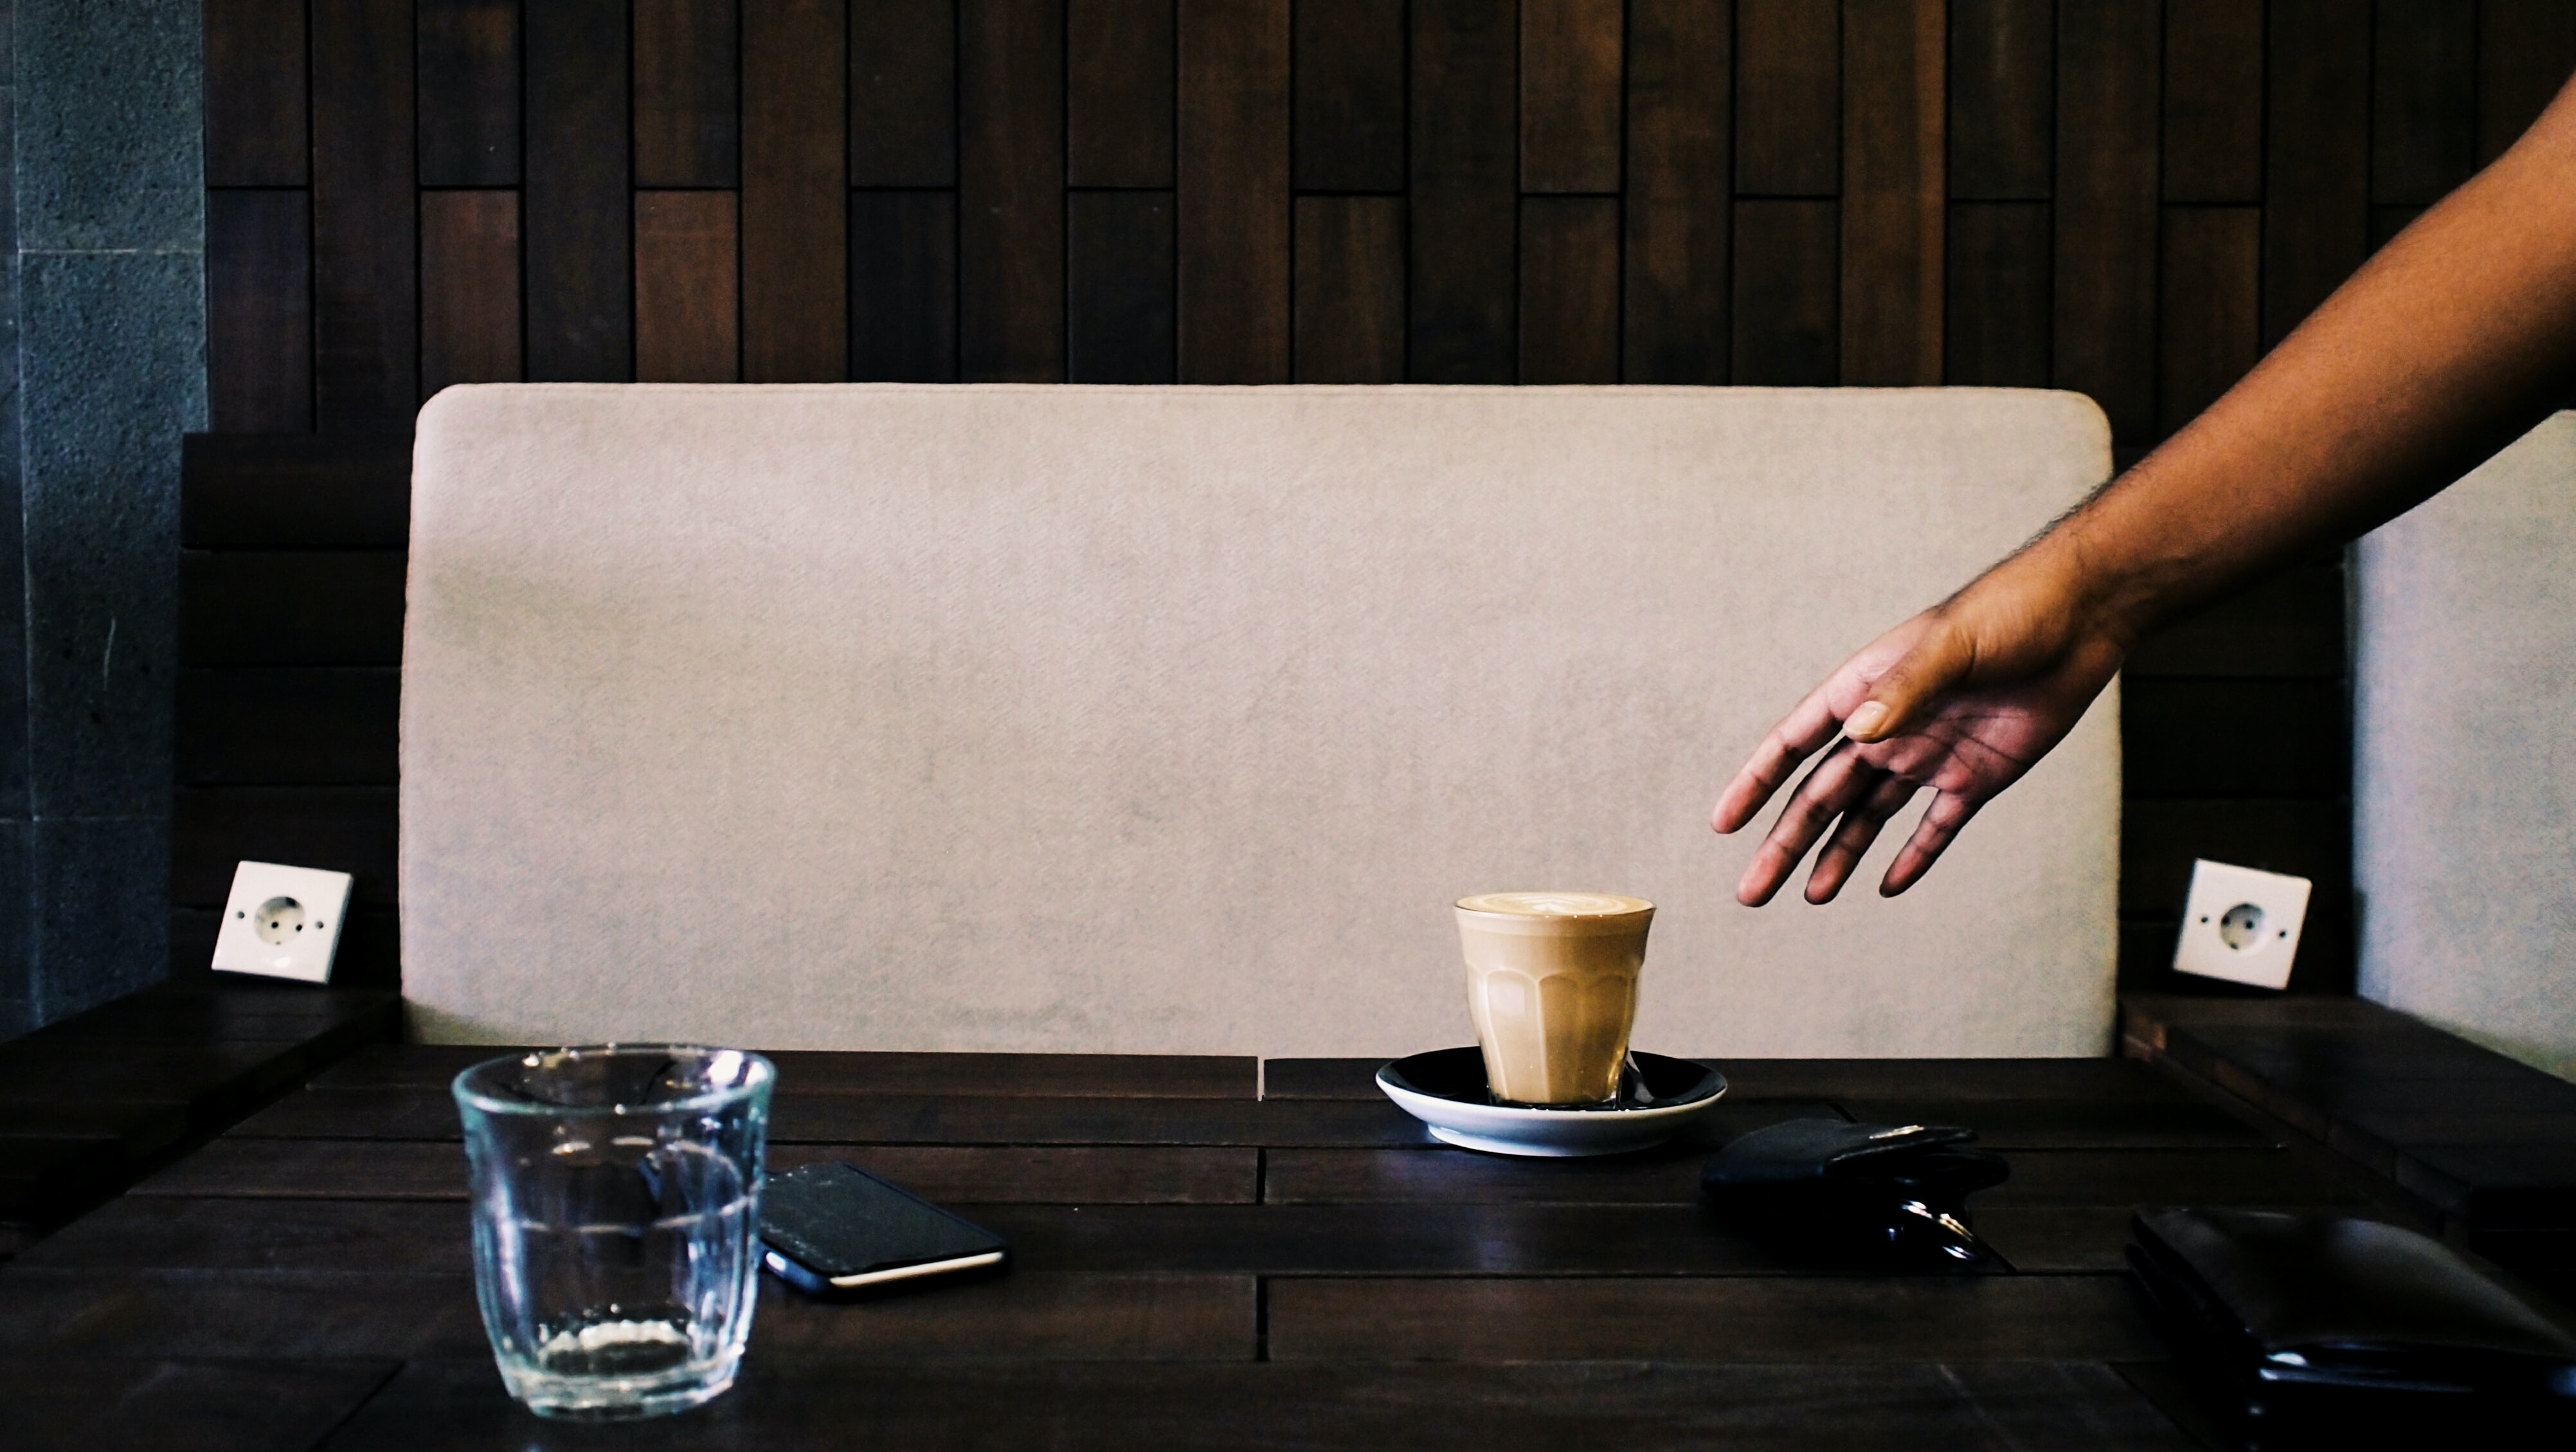 Person reaching for coffee mug on modern, wood table